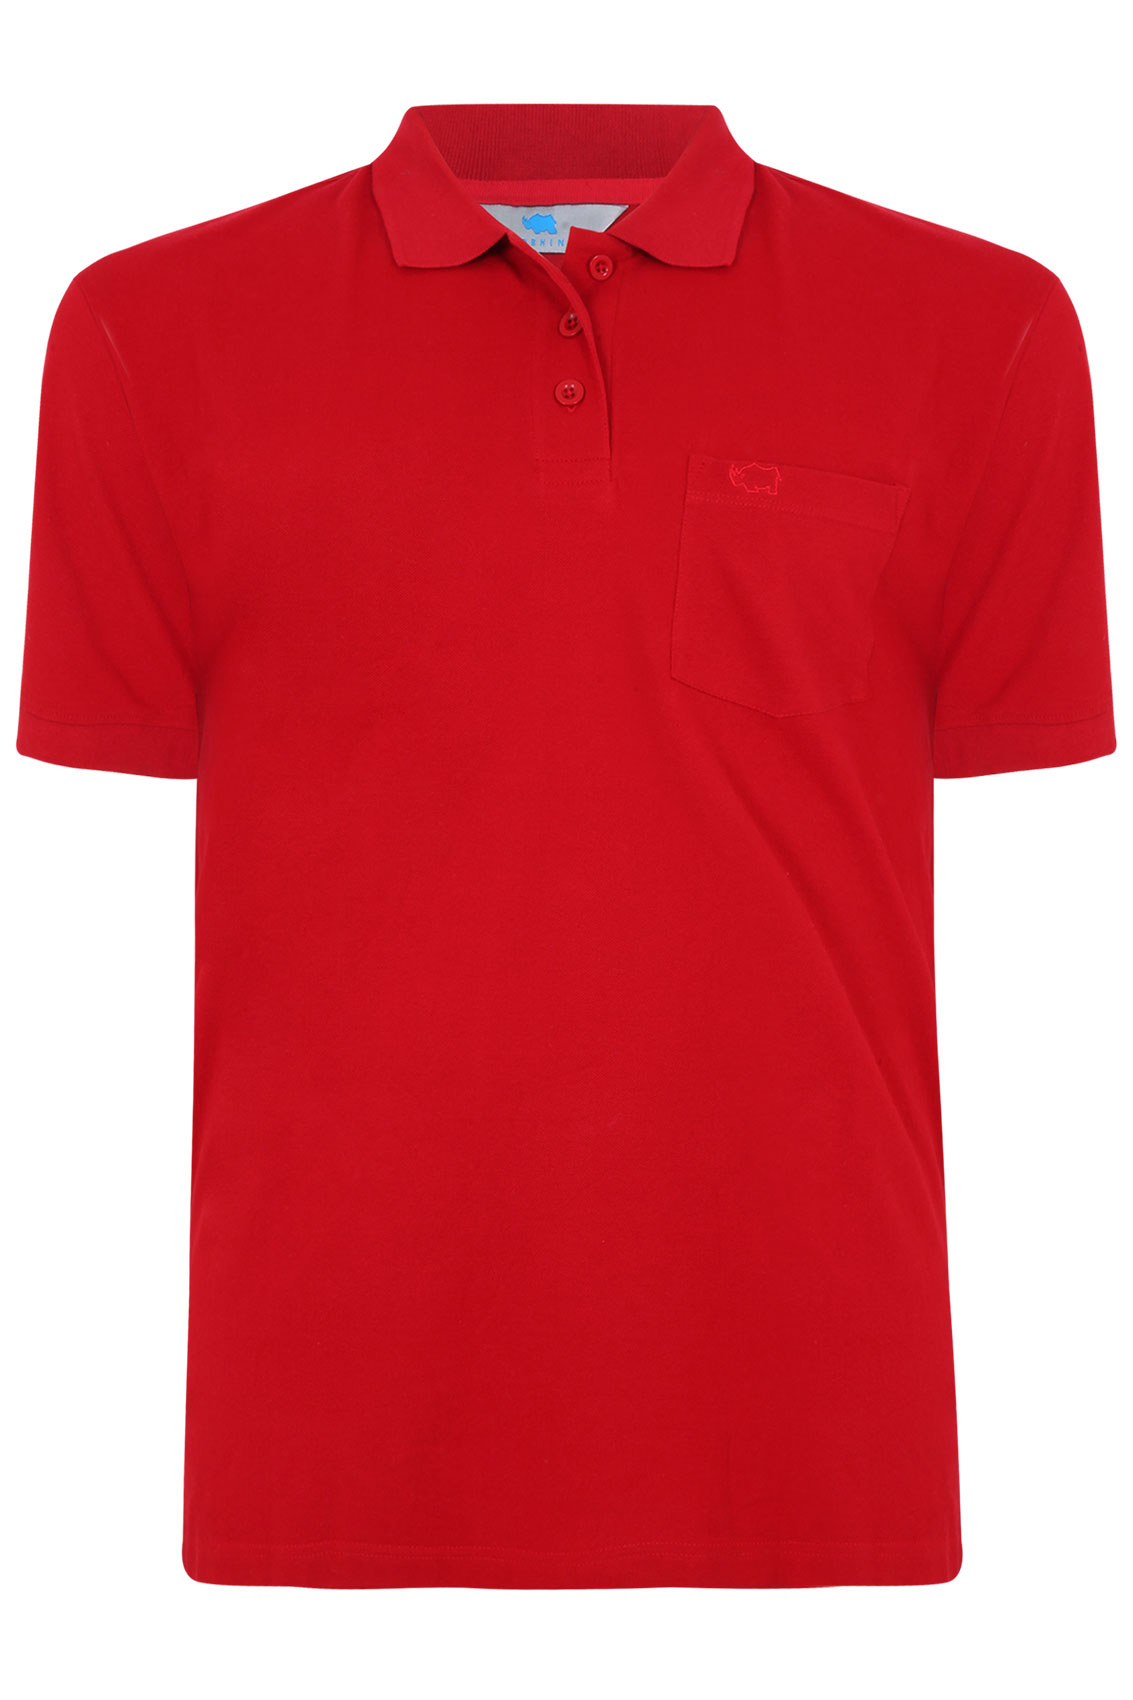 Badrhino Red Plain Polo Shirt Tall Extra Large Sizes M L